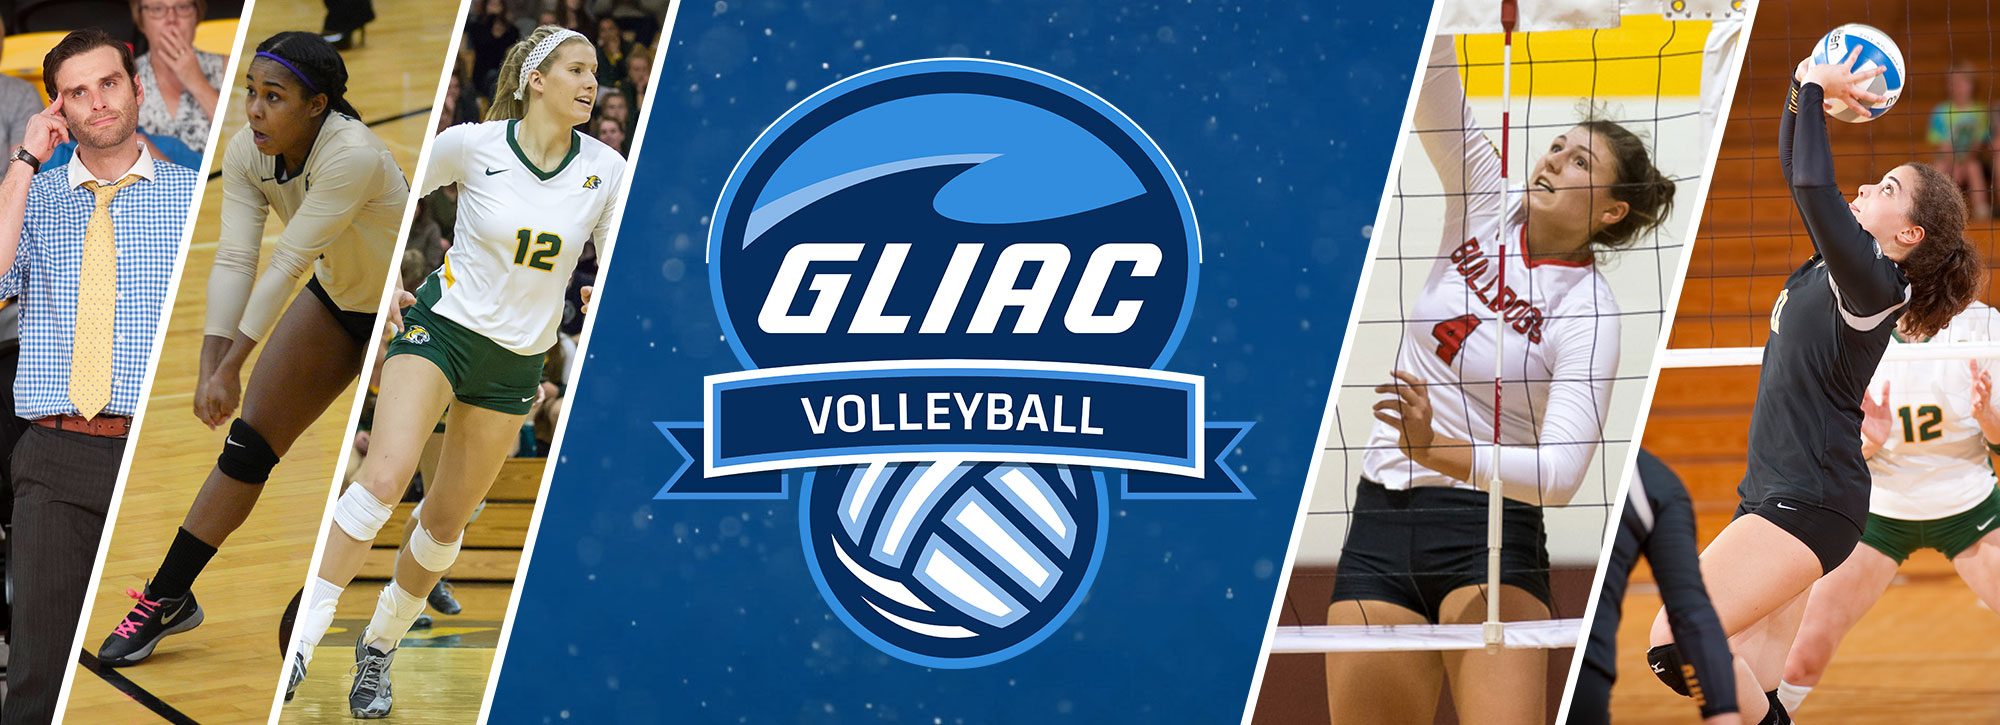 2017 All-GLIAC Volleyball Awards Unveiled